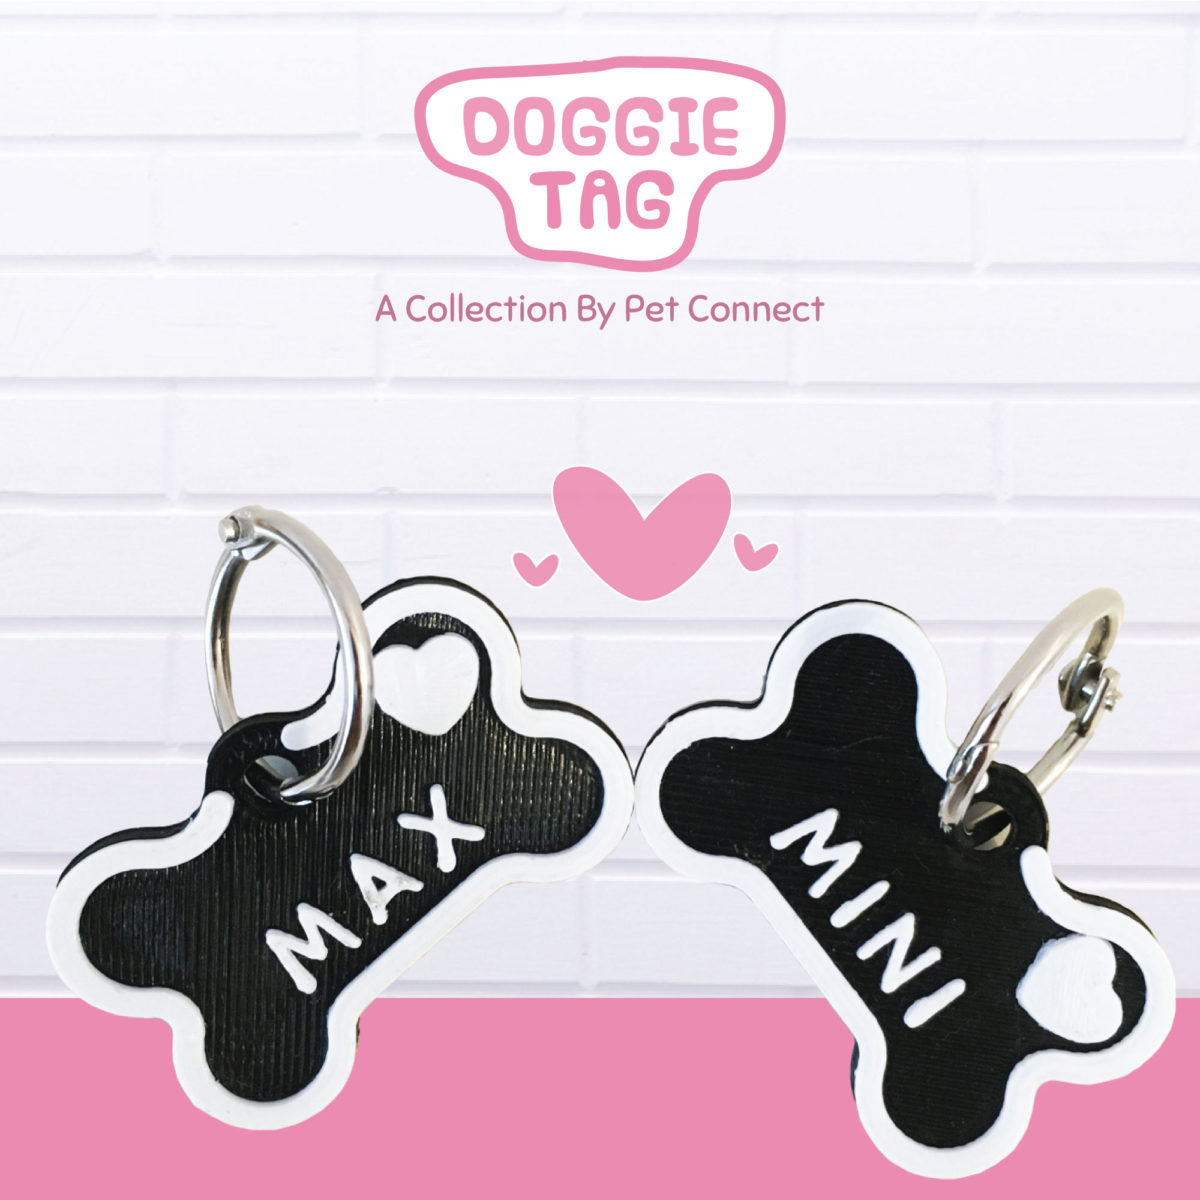 Pet Connect Doggie Tag